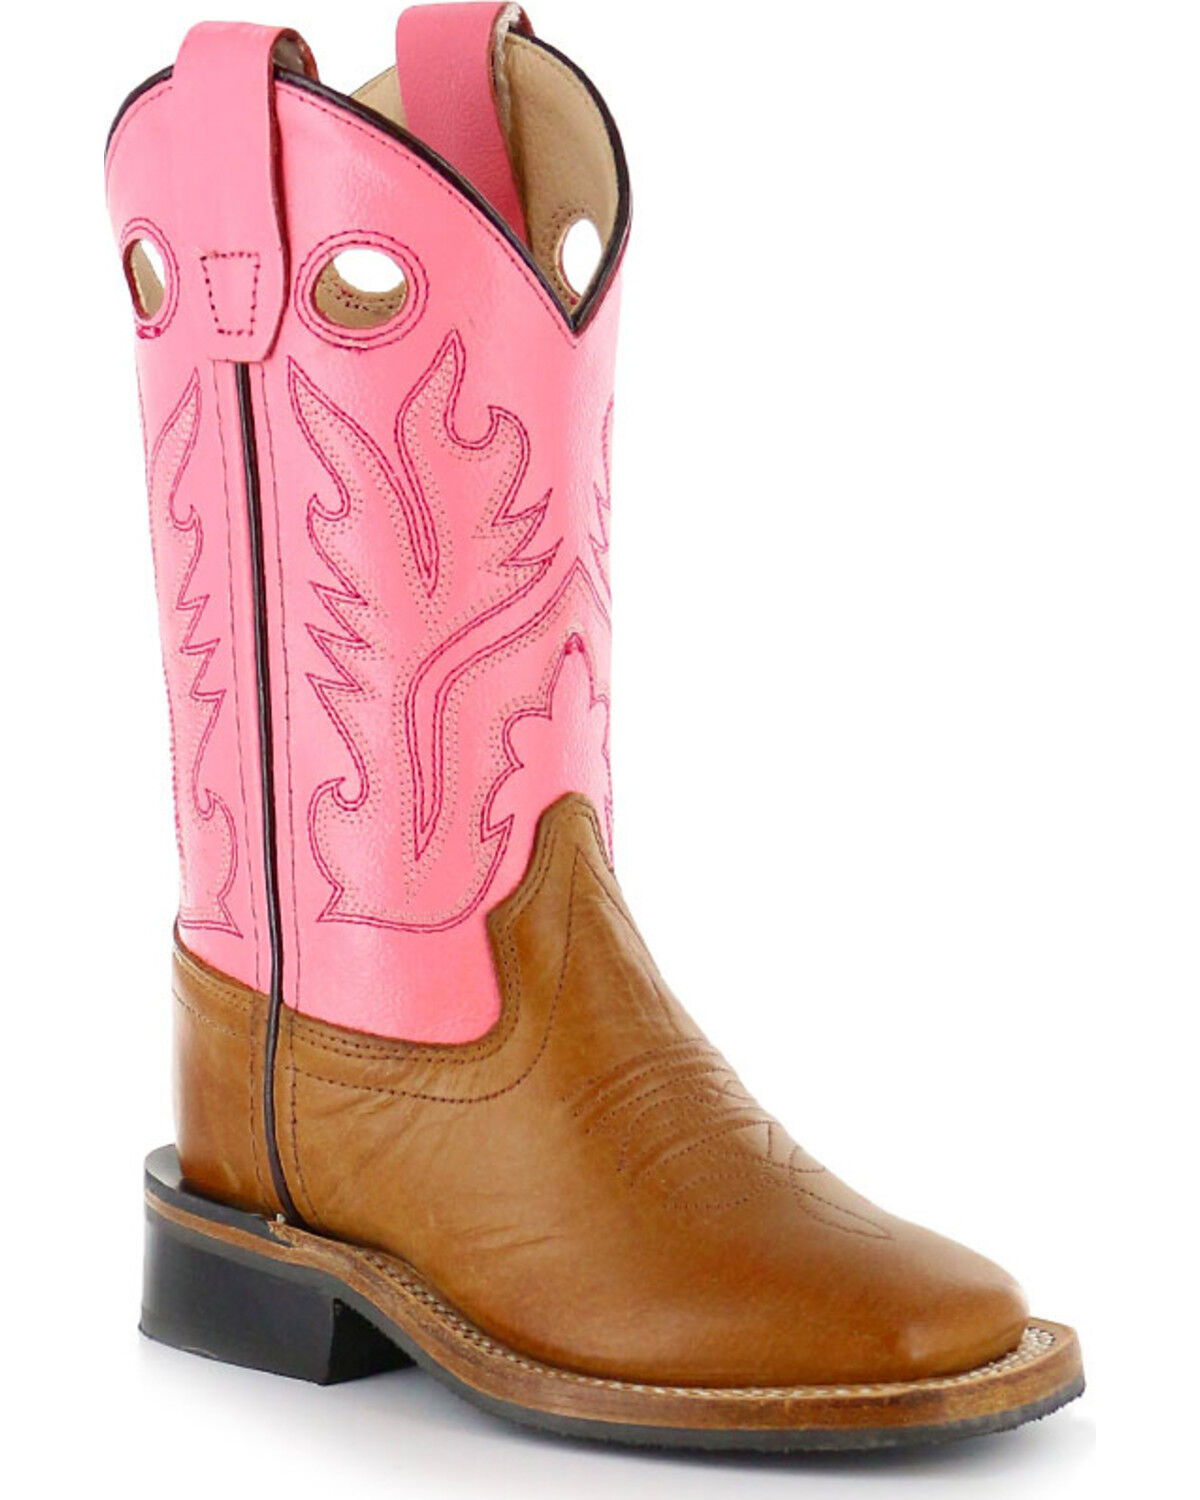 Kids' Boots - Country Outfitter